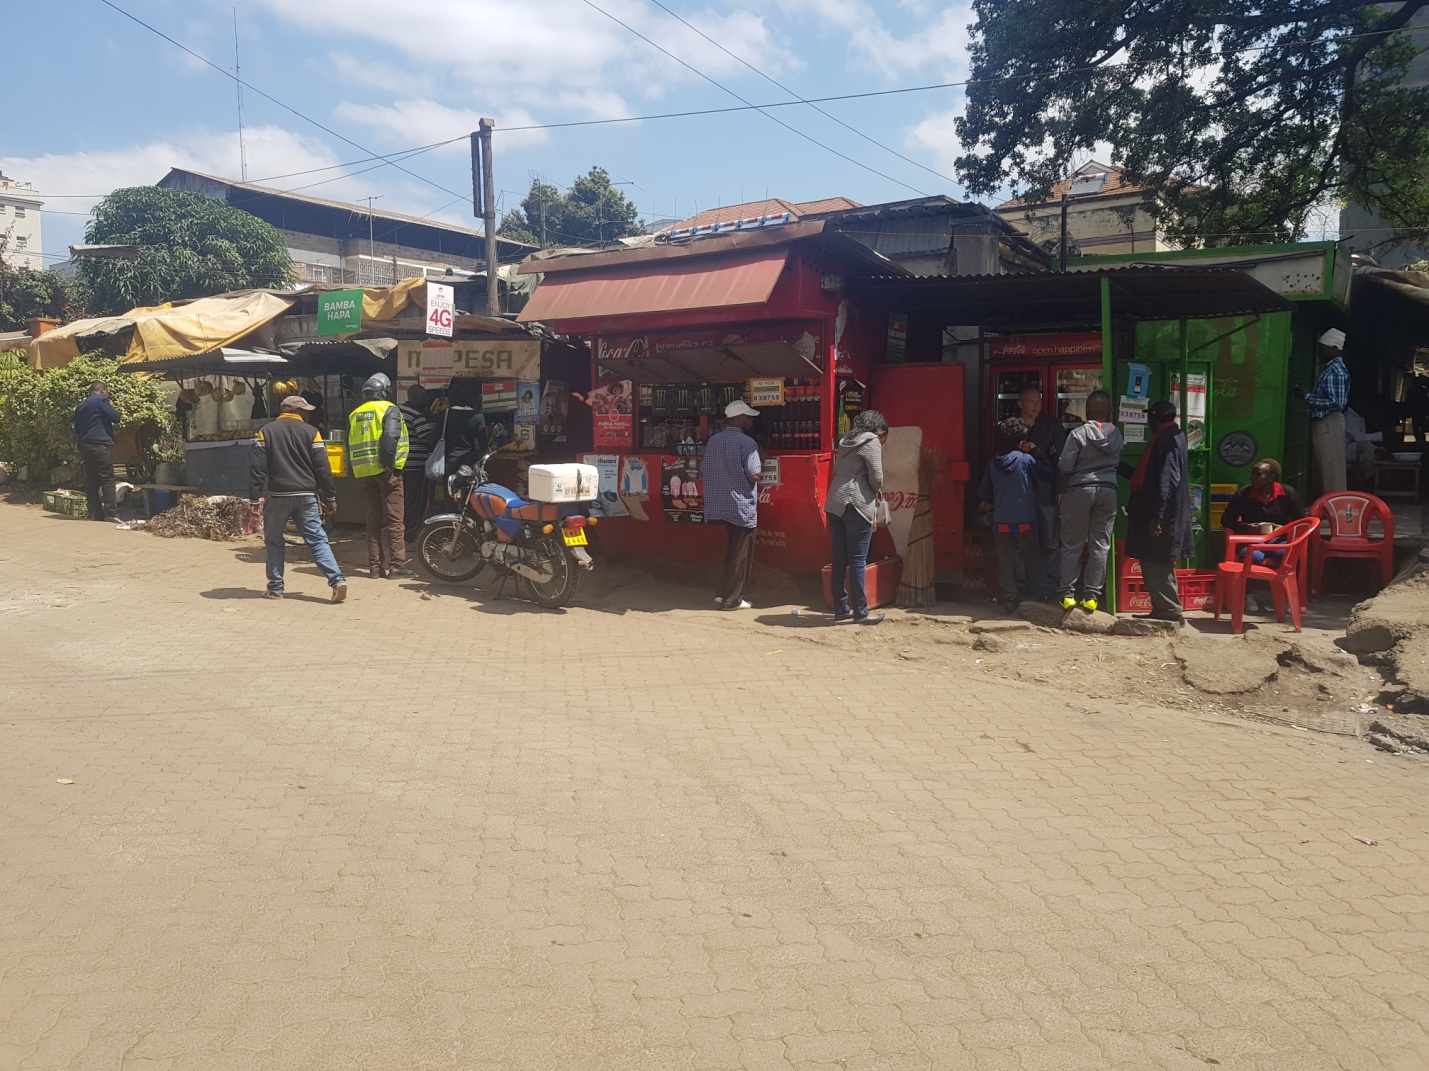 Nairobi's thriving food business you never knew existed